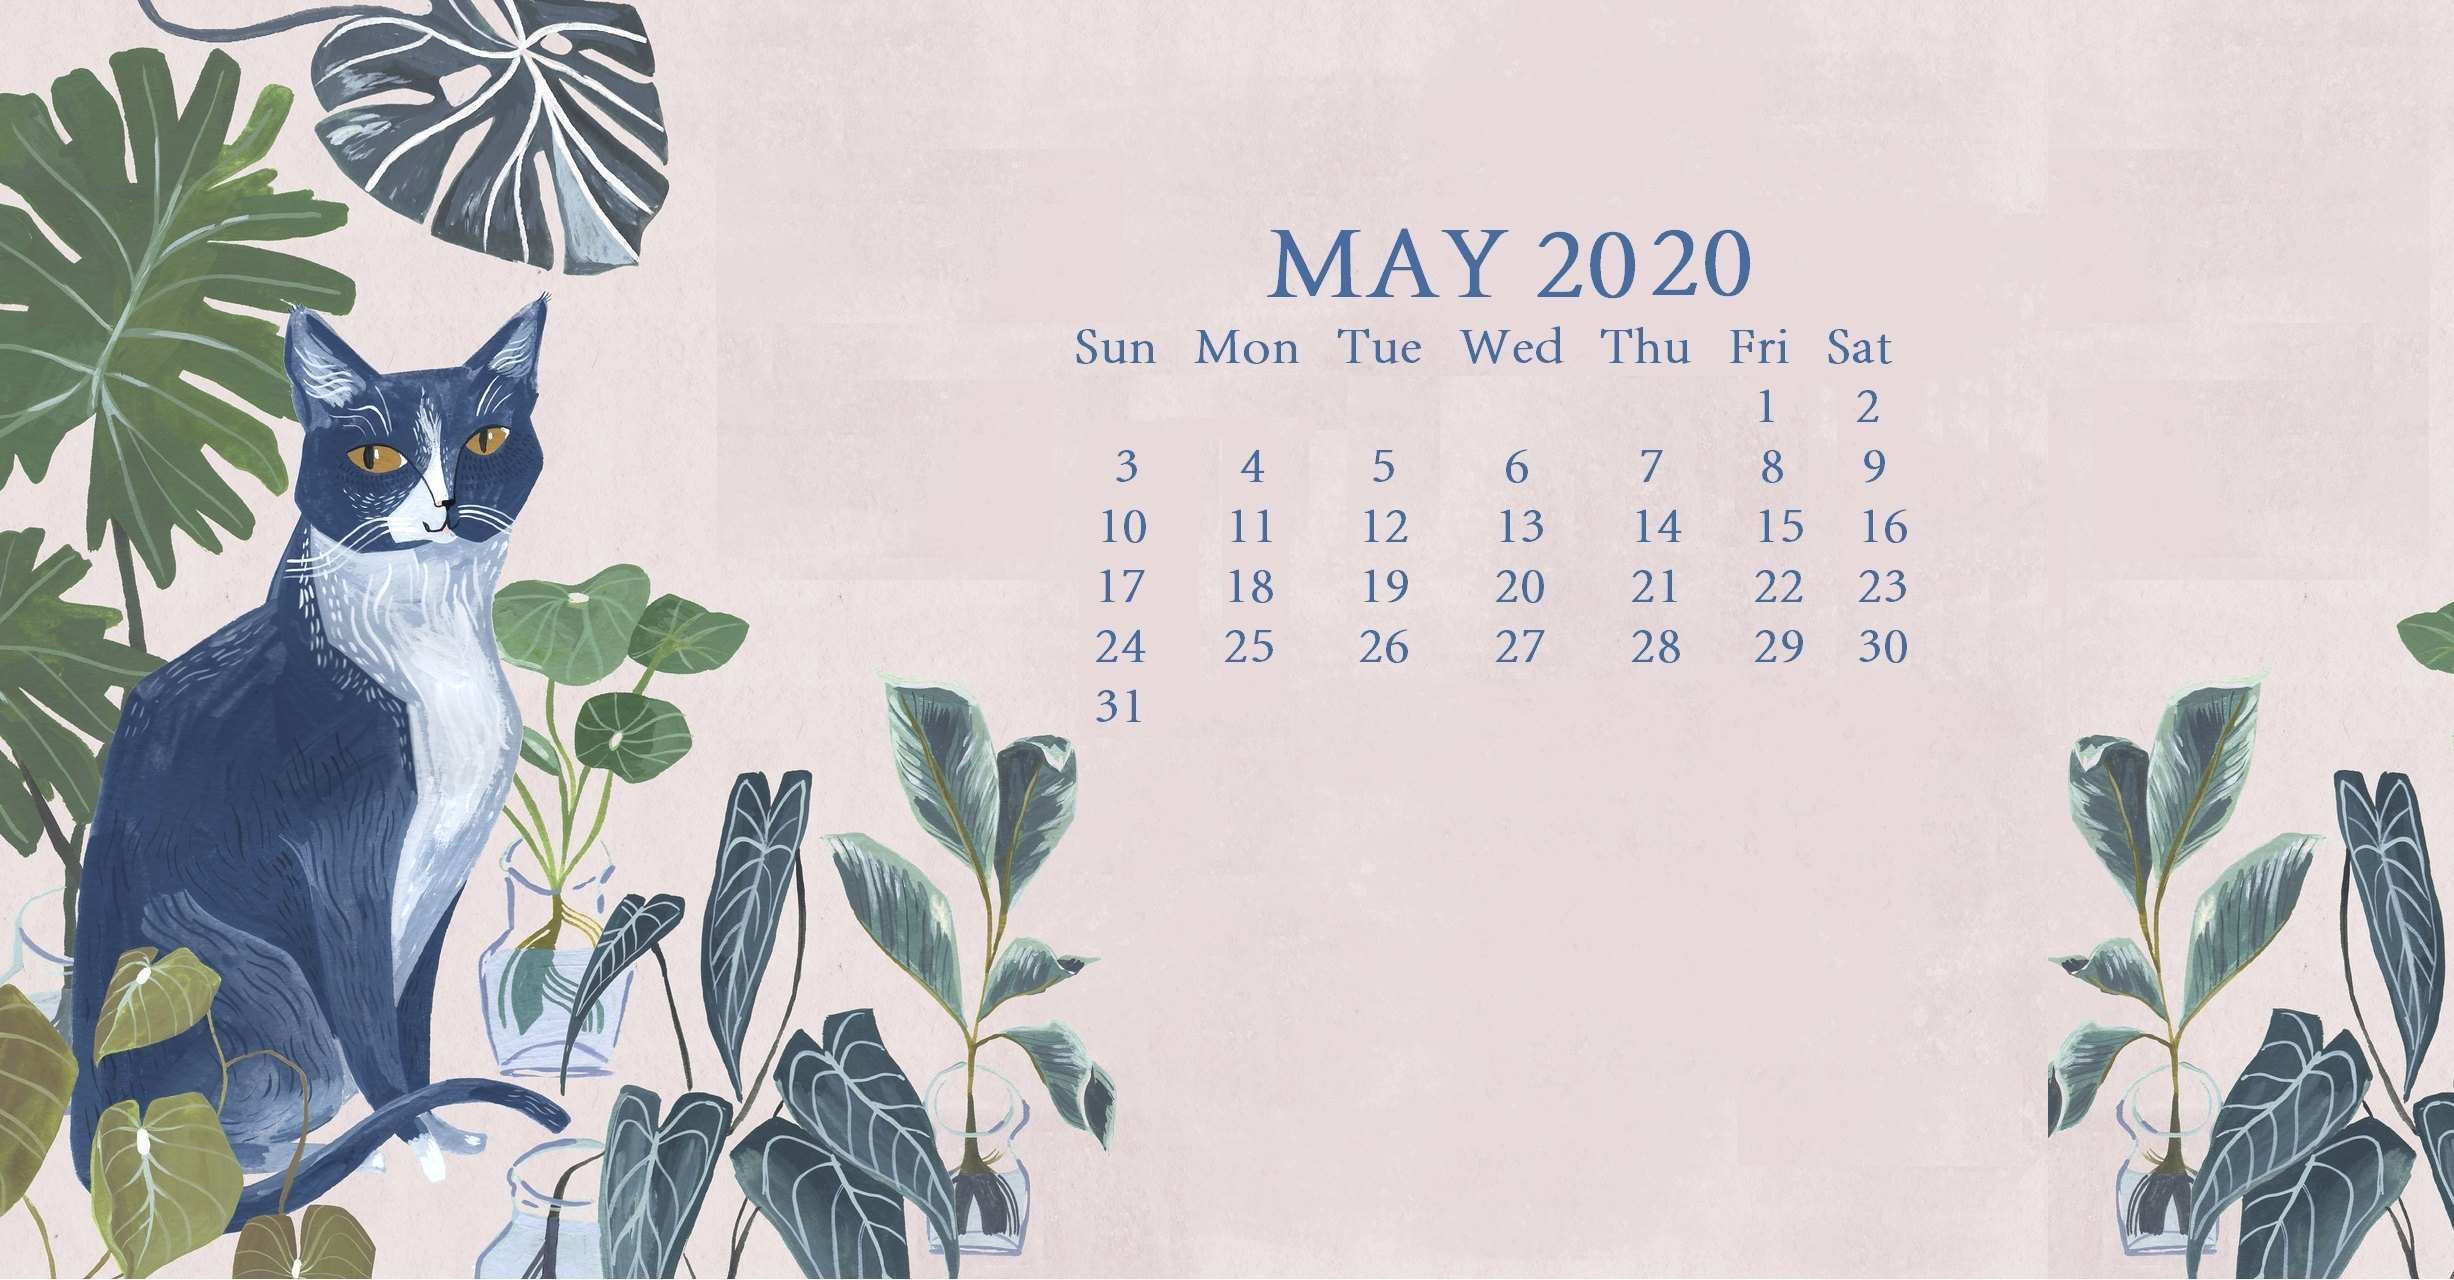 download Cute 2020 Desktop Calendar Wallpaper Latest Calendar 2454x1280